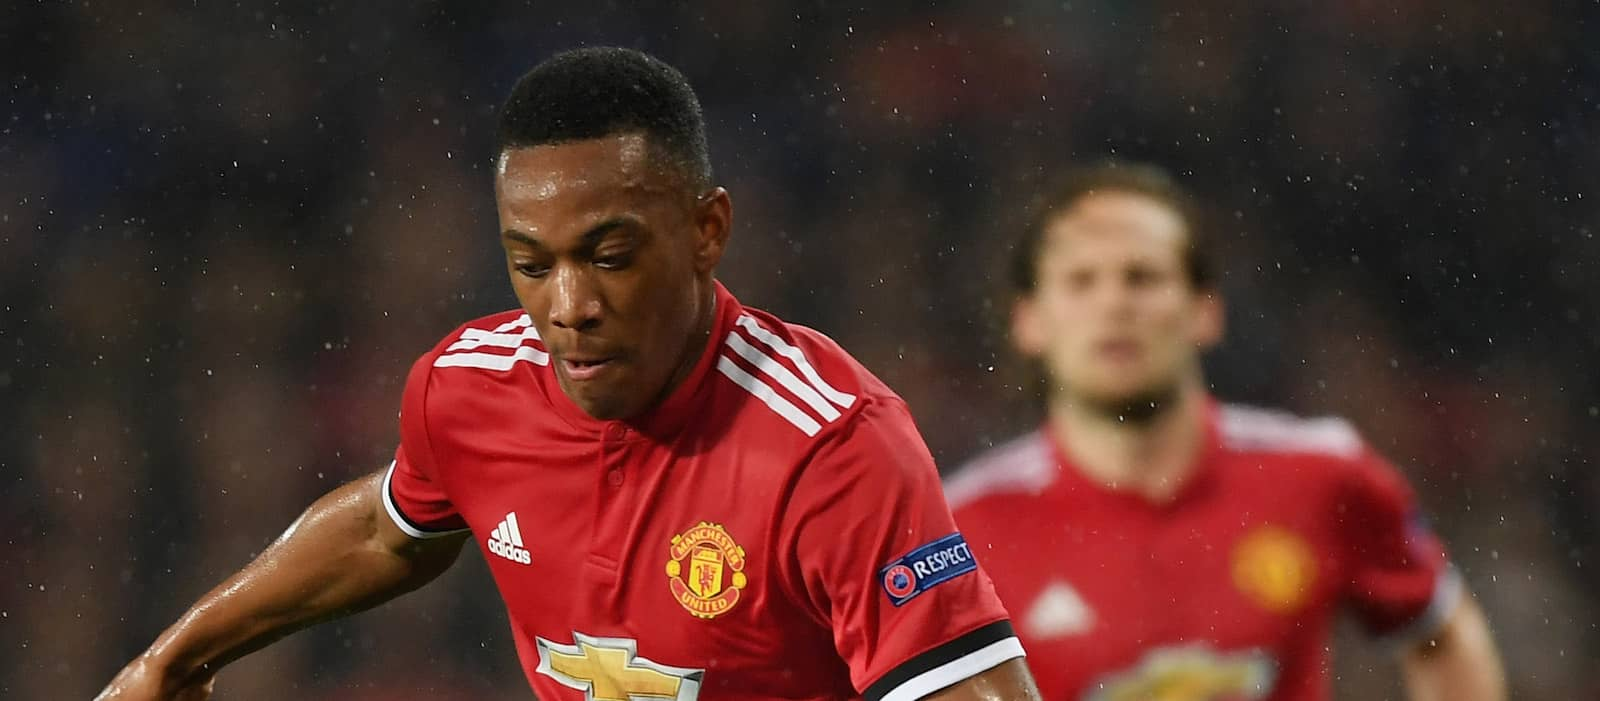 Anthony Martial urged to have more confidence in his abilities by Manchester United teammate Nemanja Matic